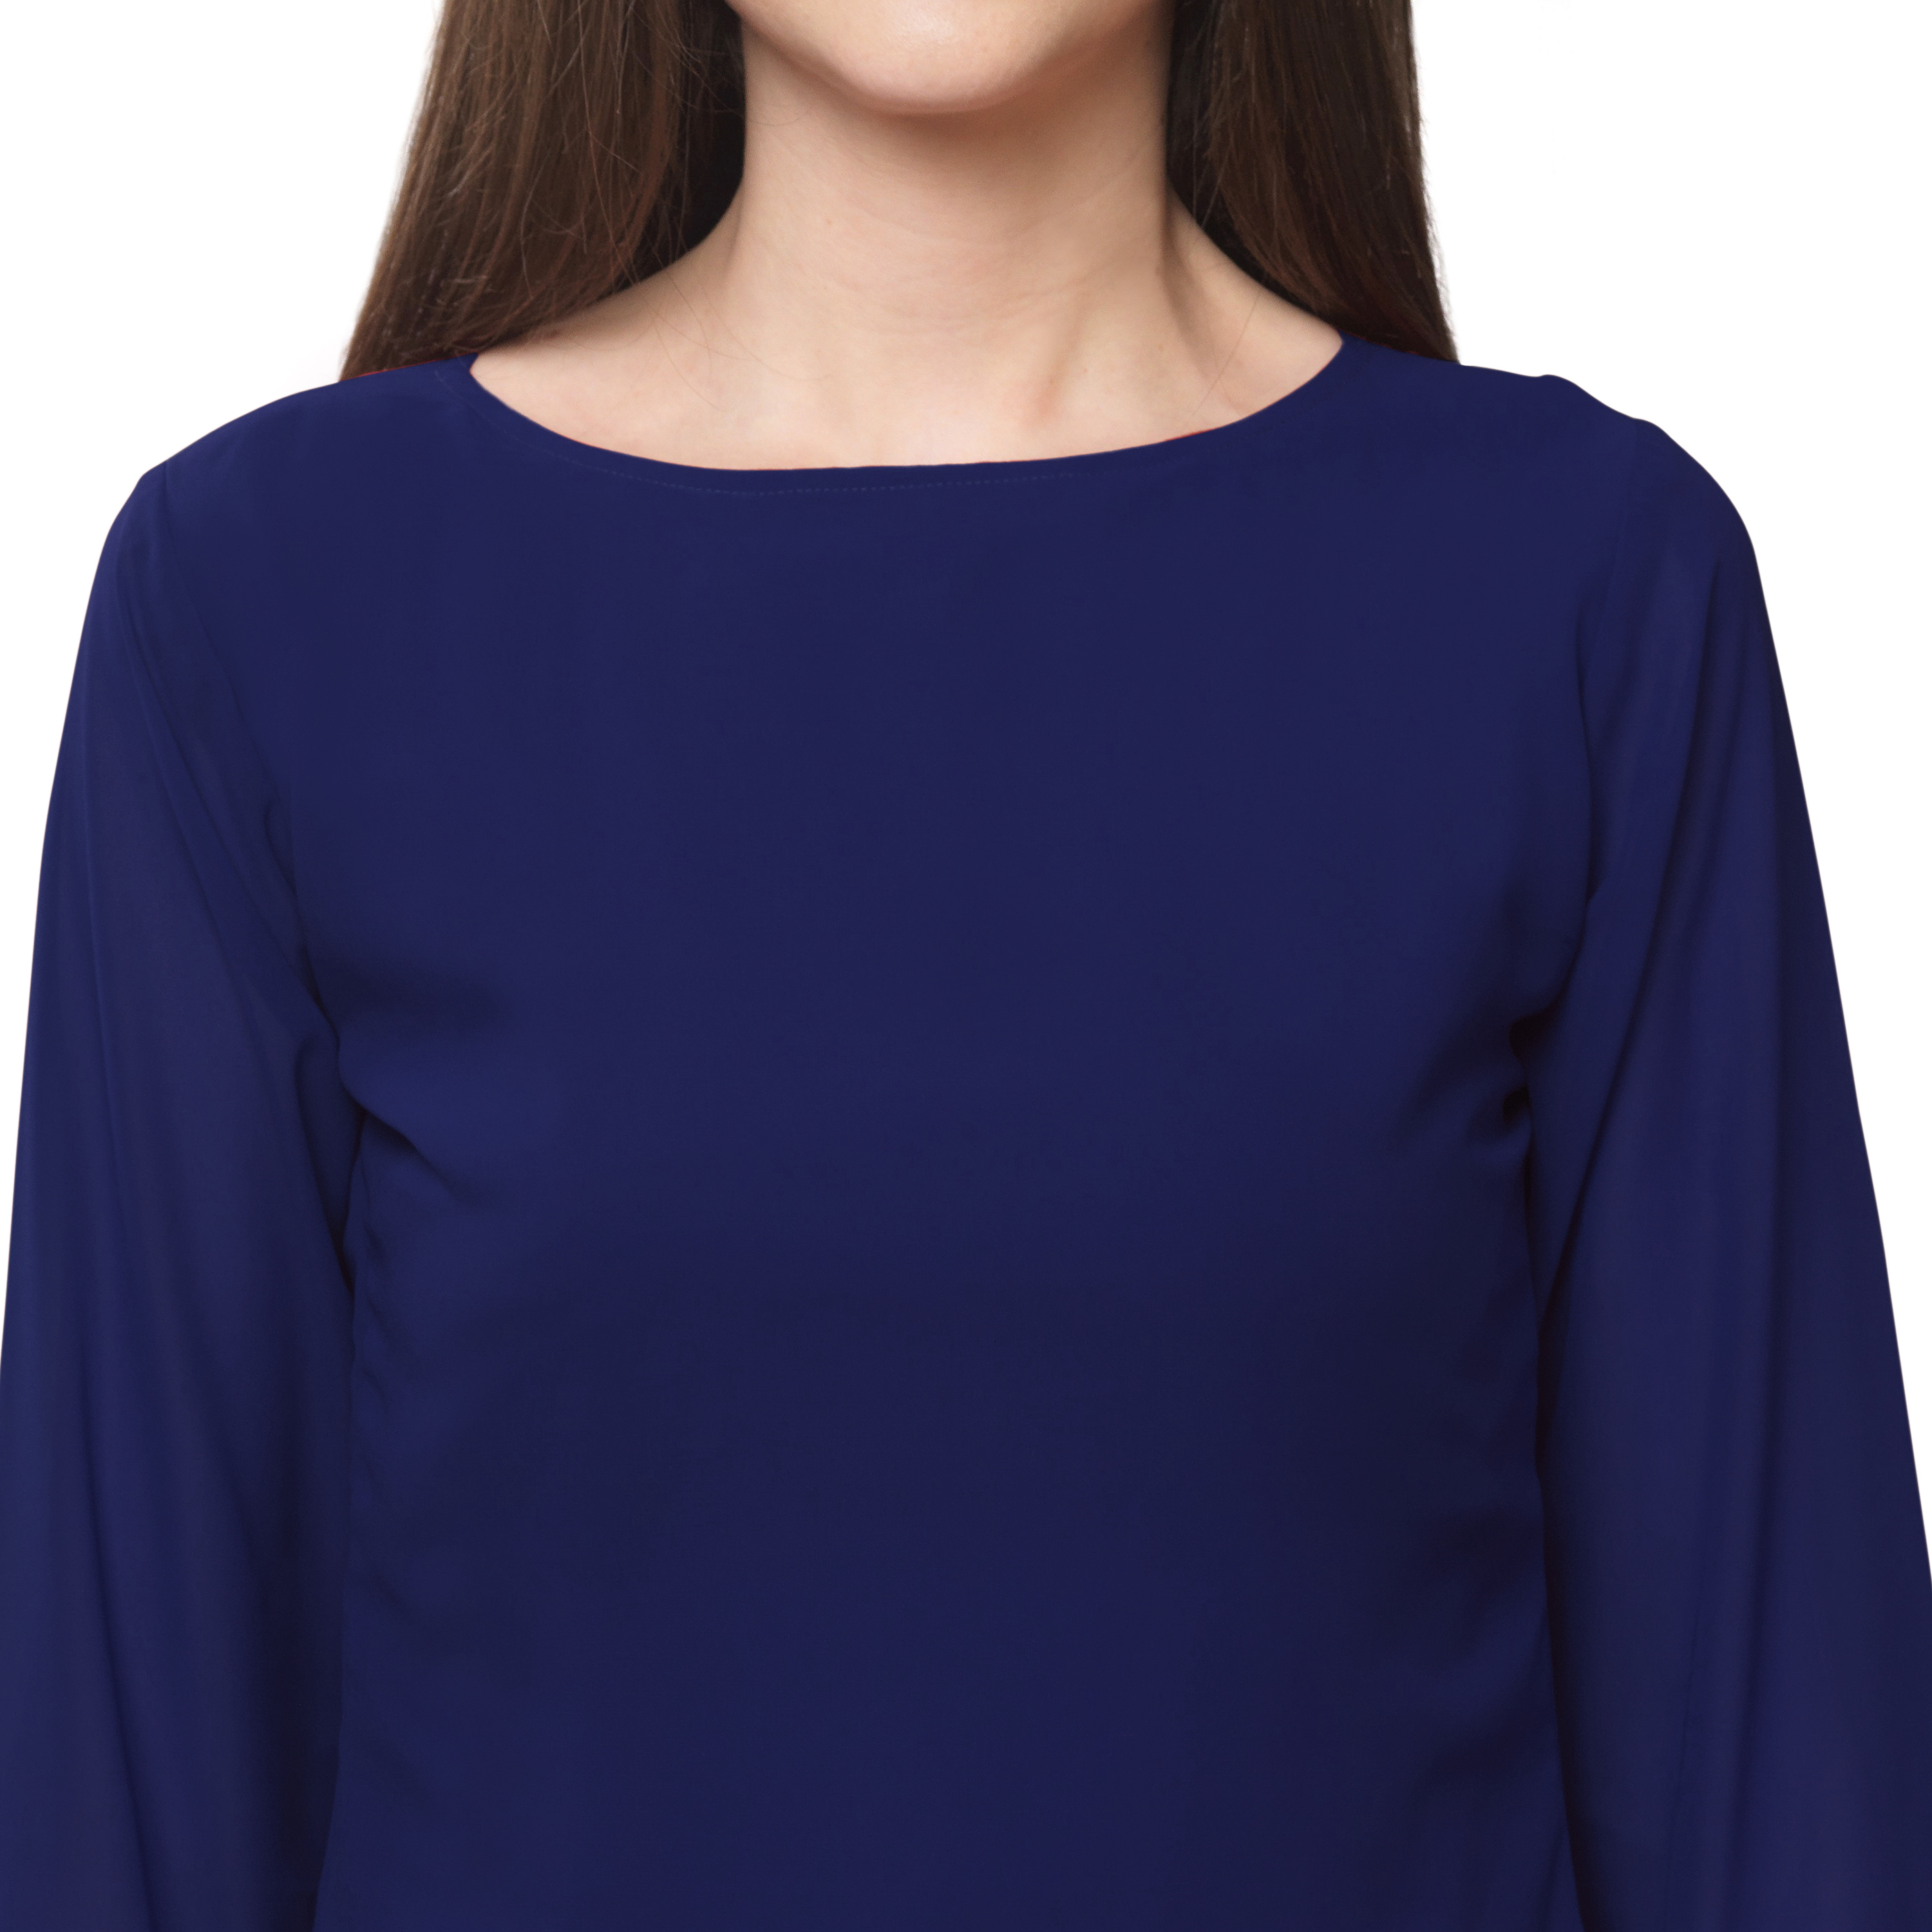 FabBucket Casual Flared Sleeve Self Design, Solid Women Dark Blue Top